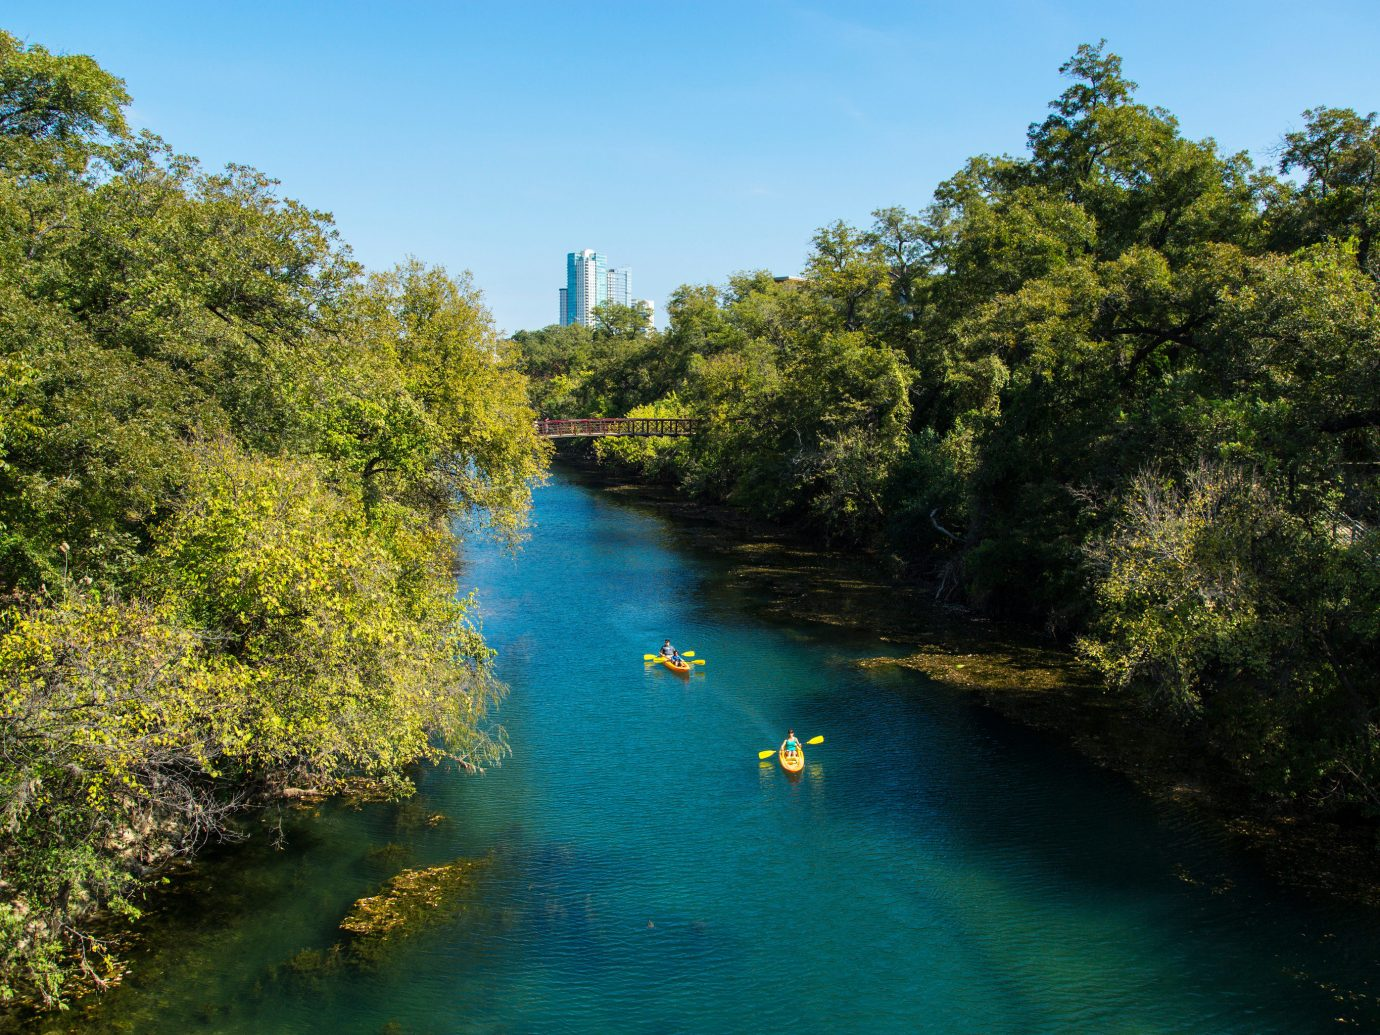 Austin Girls Getaways Texas Trip Ideas Weekend Getaways tree outdoor water sky Nature River landform geographical feature body of water waterway reflection reservoir Lake autumn Canal plant surrounded Forest wooded